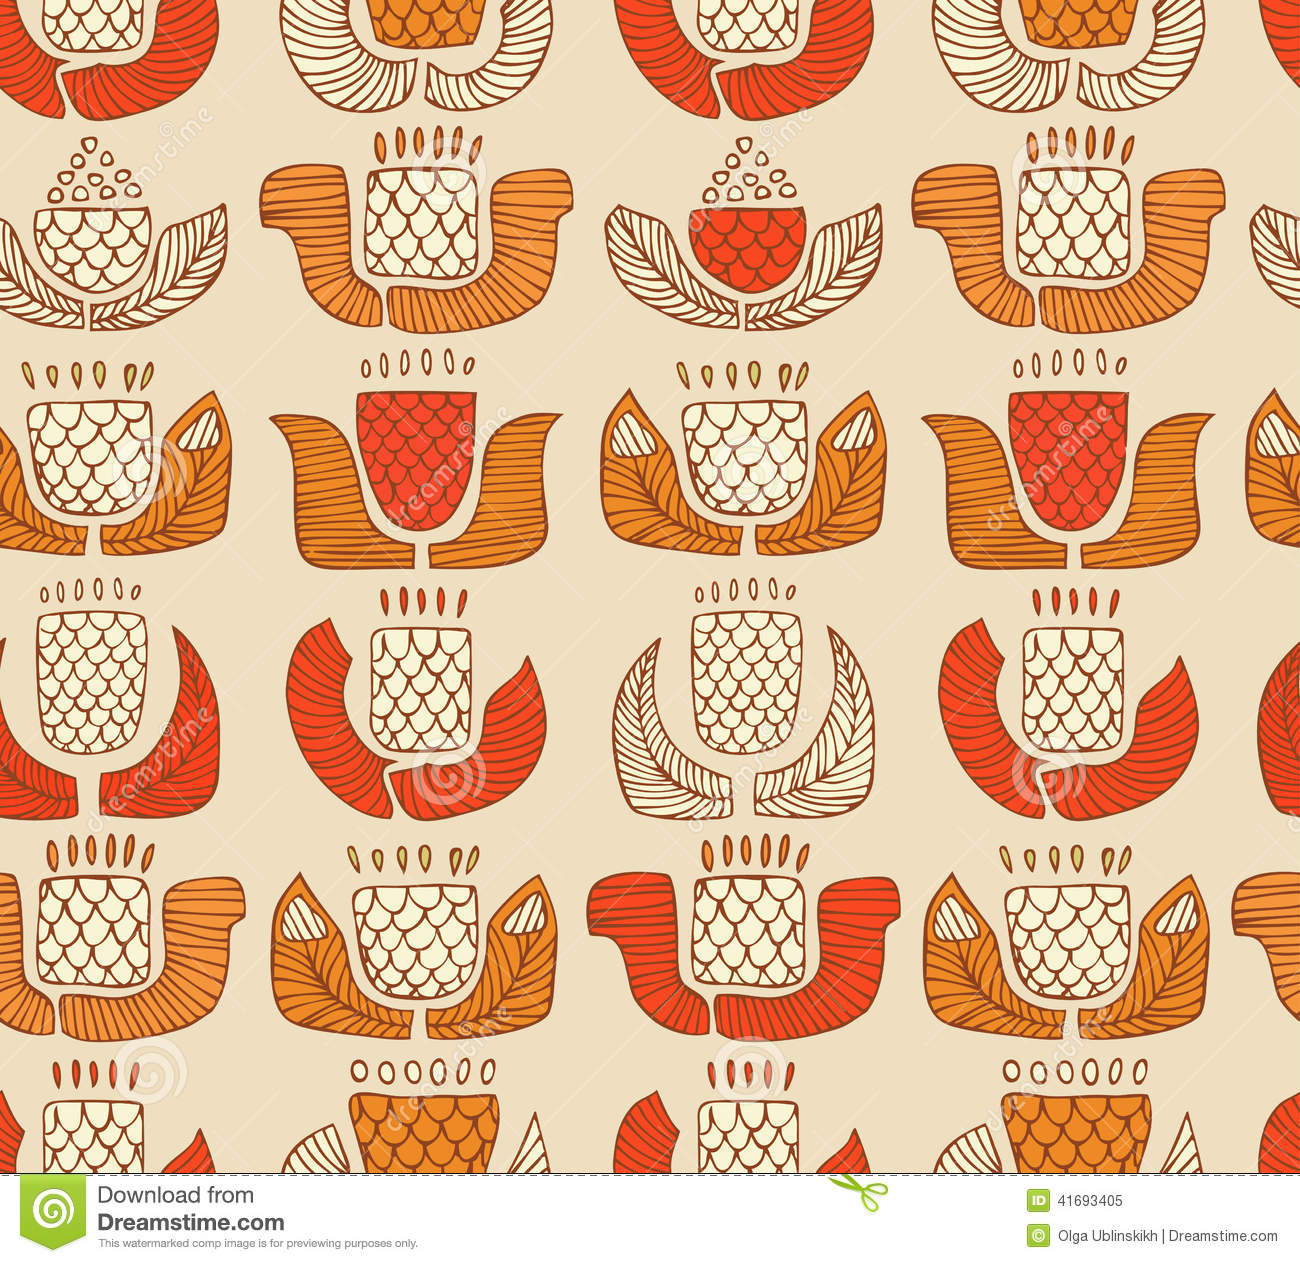 Ethnic pattern with decorative flowers, buds and leaves. Endless background with ornamental native elements